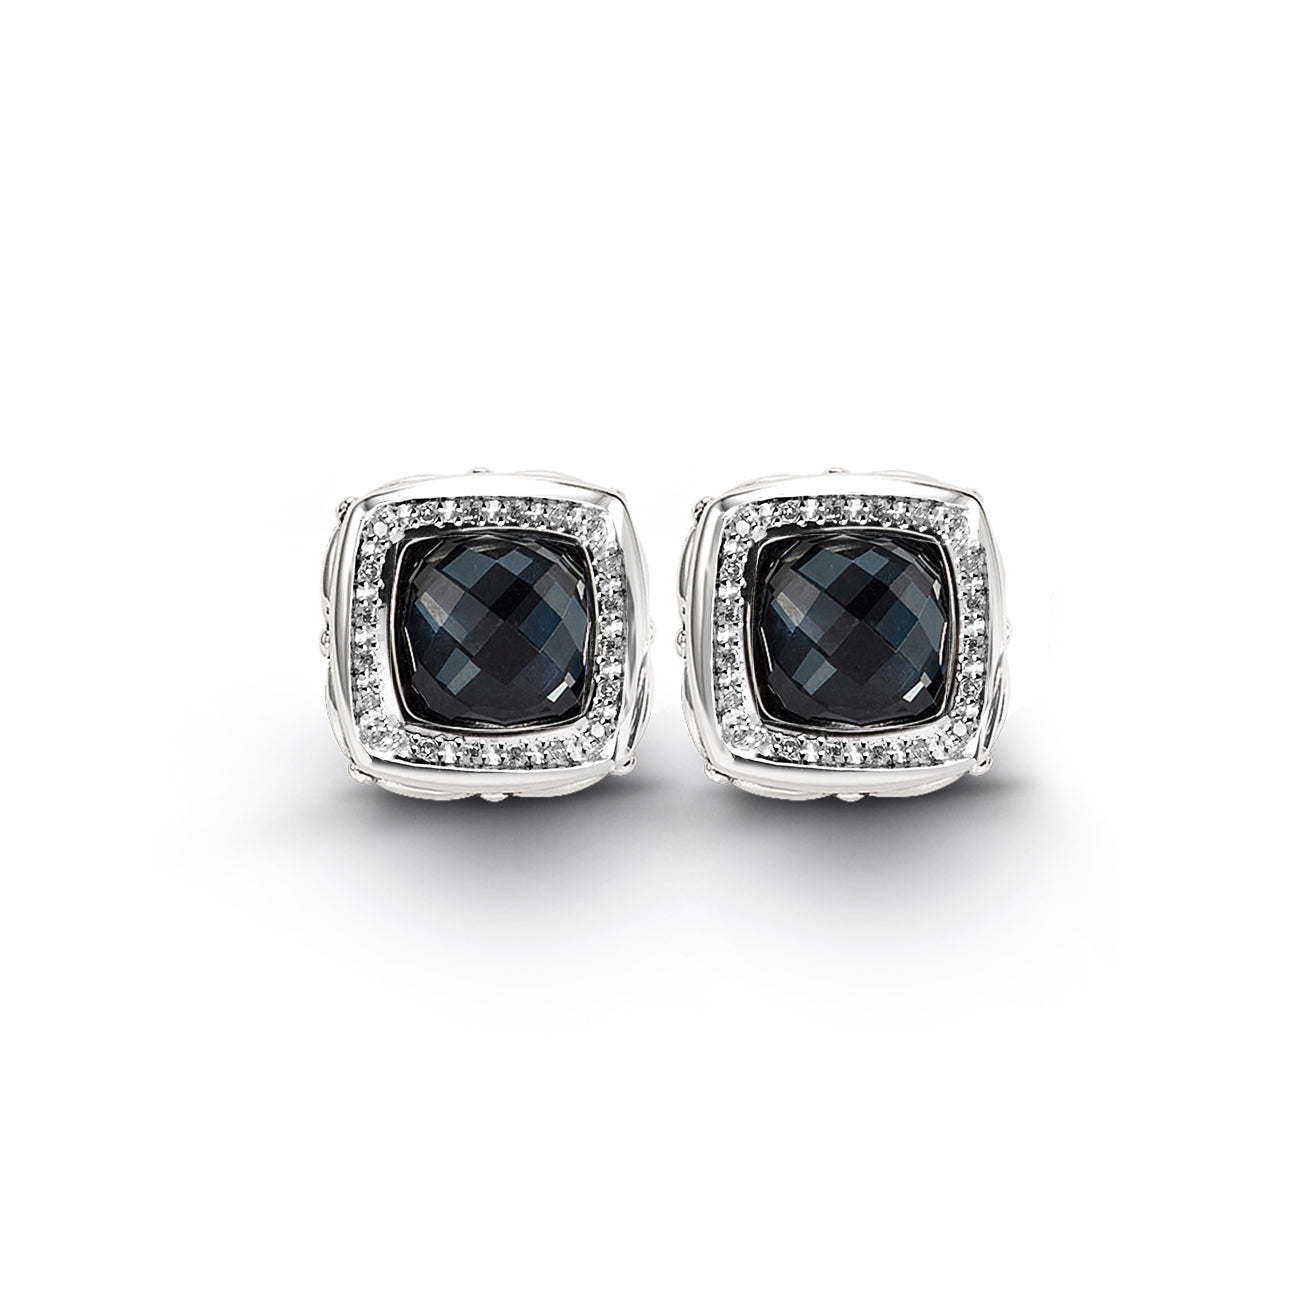 Hematite and Diamond Earrings, Sterling Silver